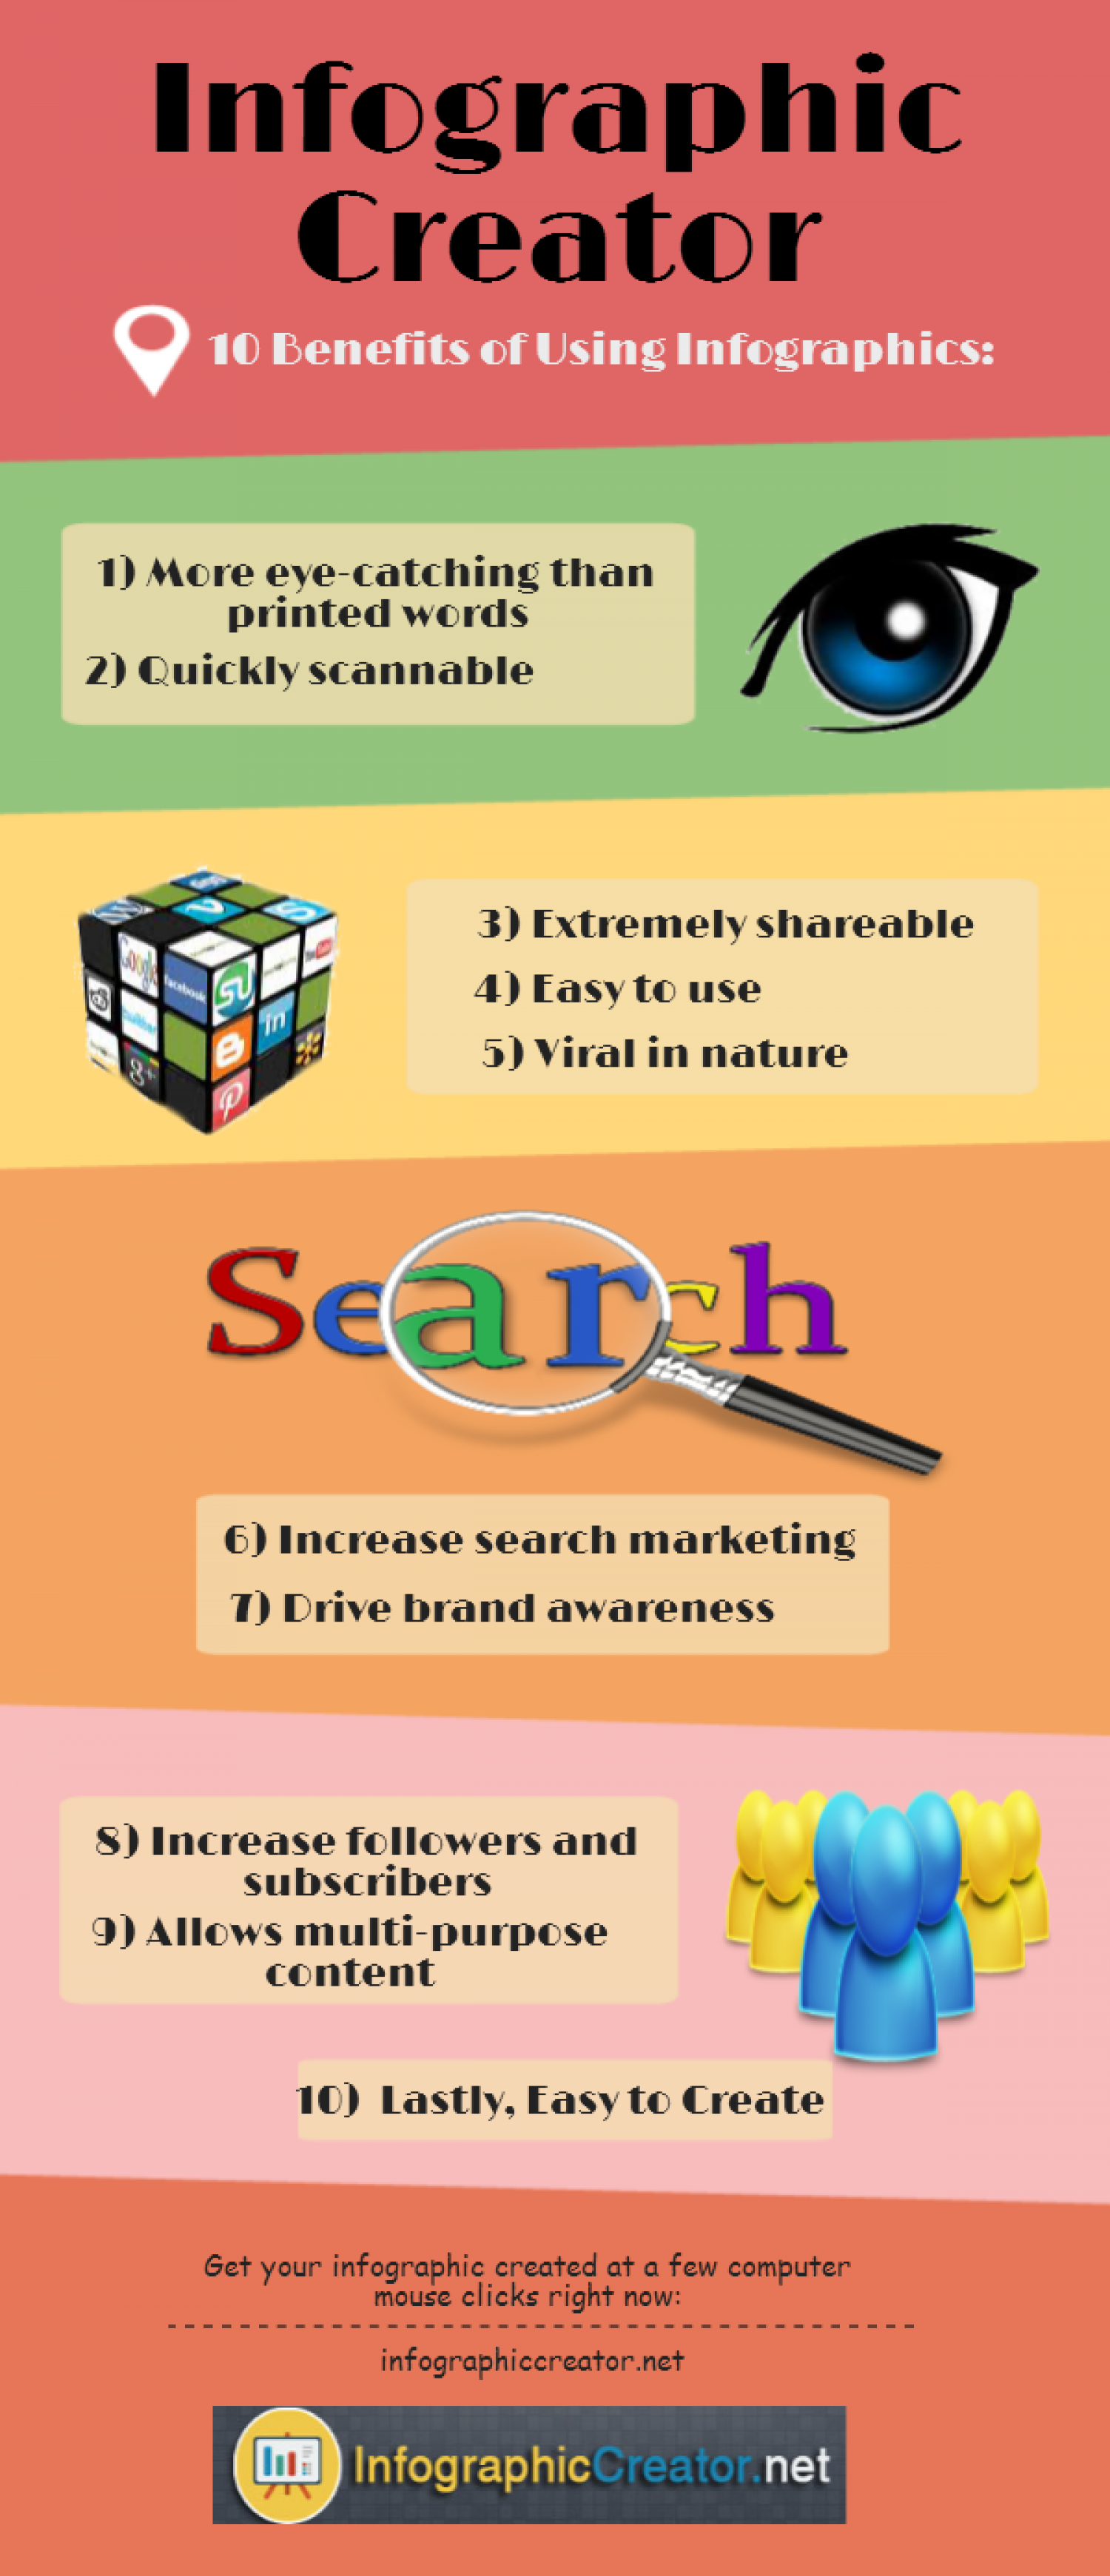 Infographic creator | Visual.ly